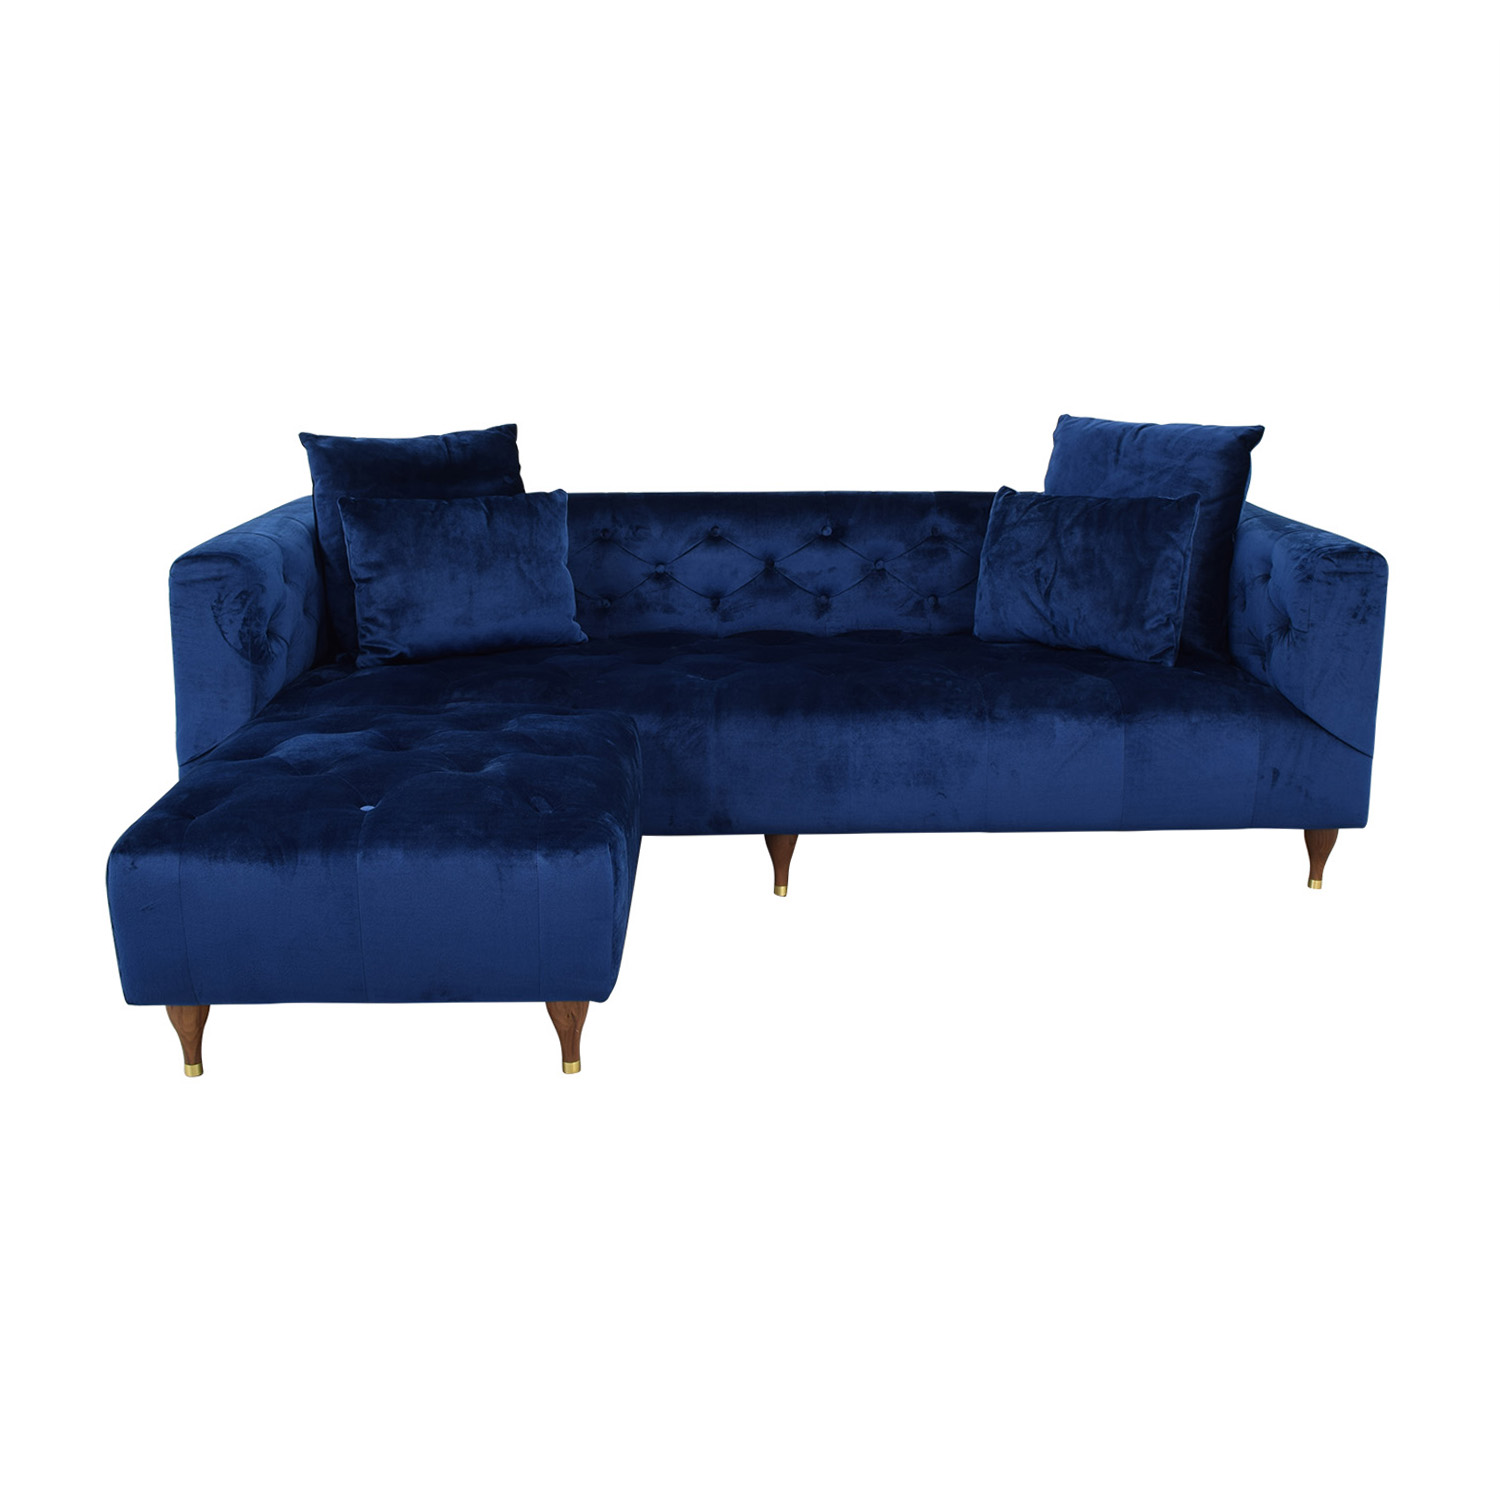 Interior Define Ms. Chesterfield Velvet Oxford Blue Tufted Sofa with Ottoman for sale